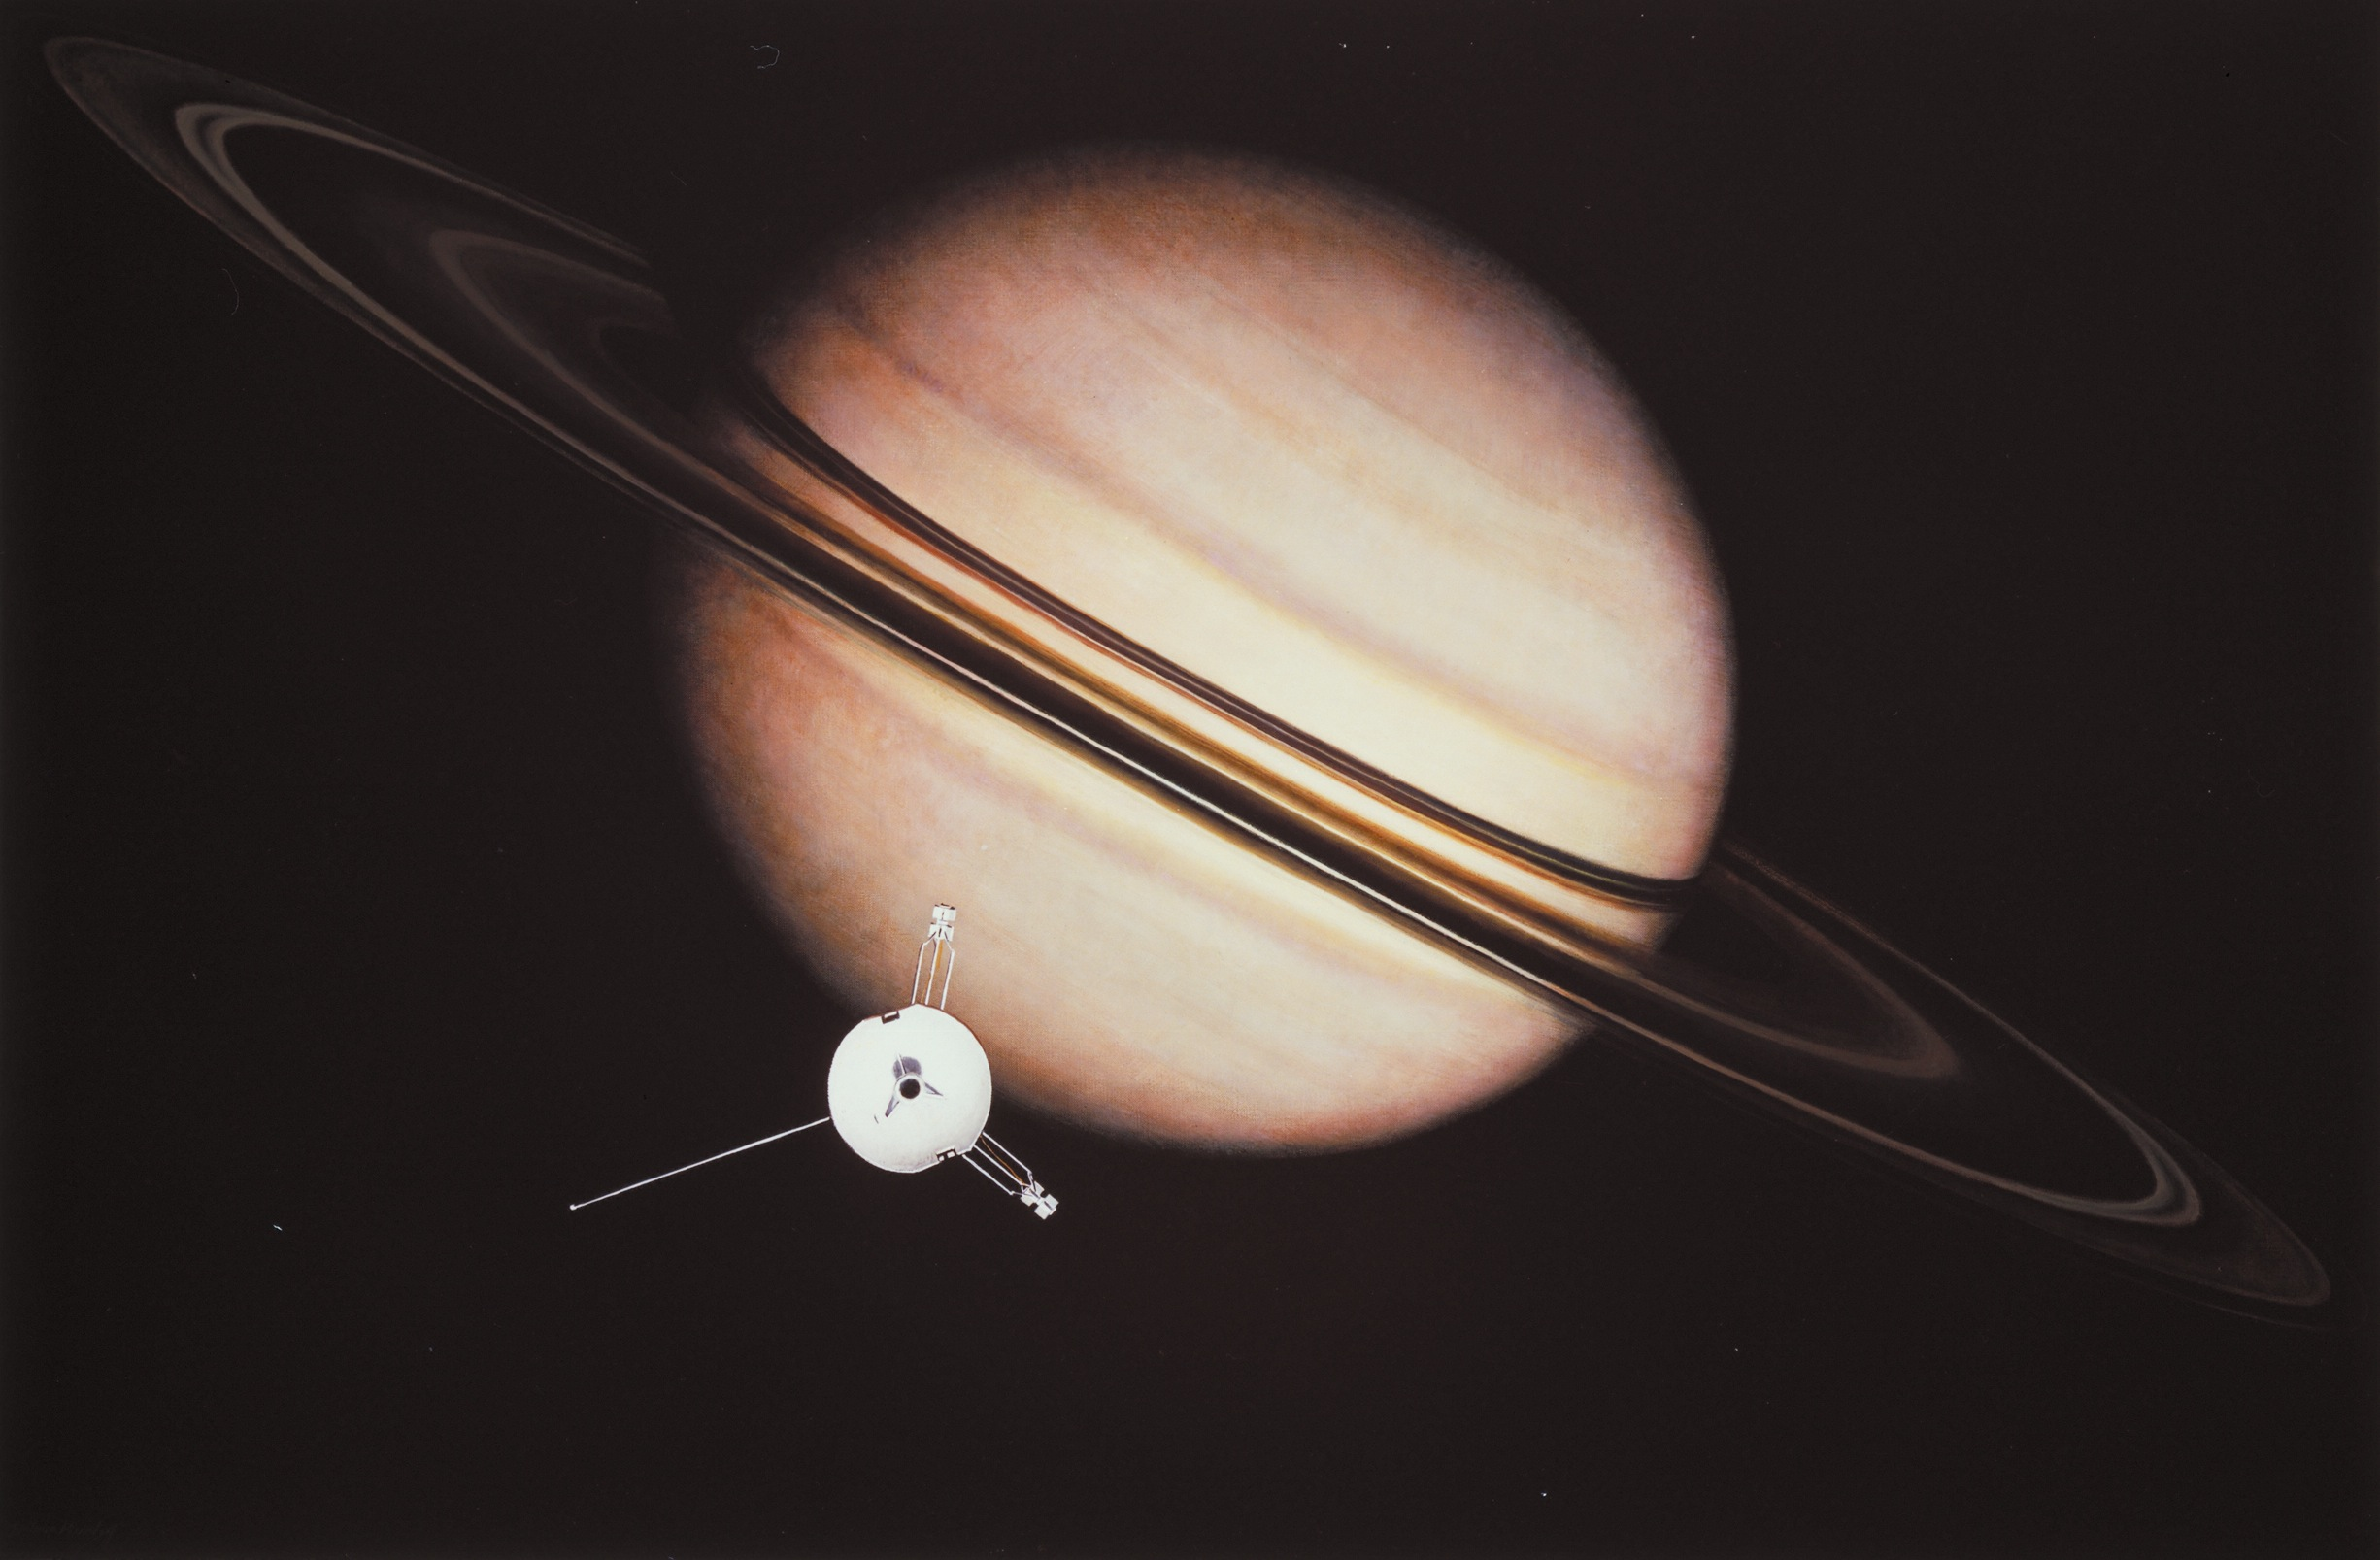 In 1979, NASA's Pioneer 11 spacecraft flew through the rings of Saturn.